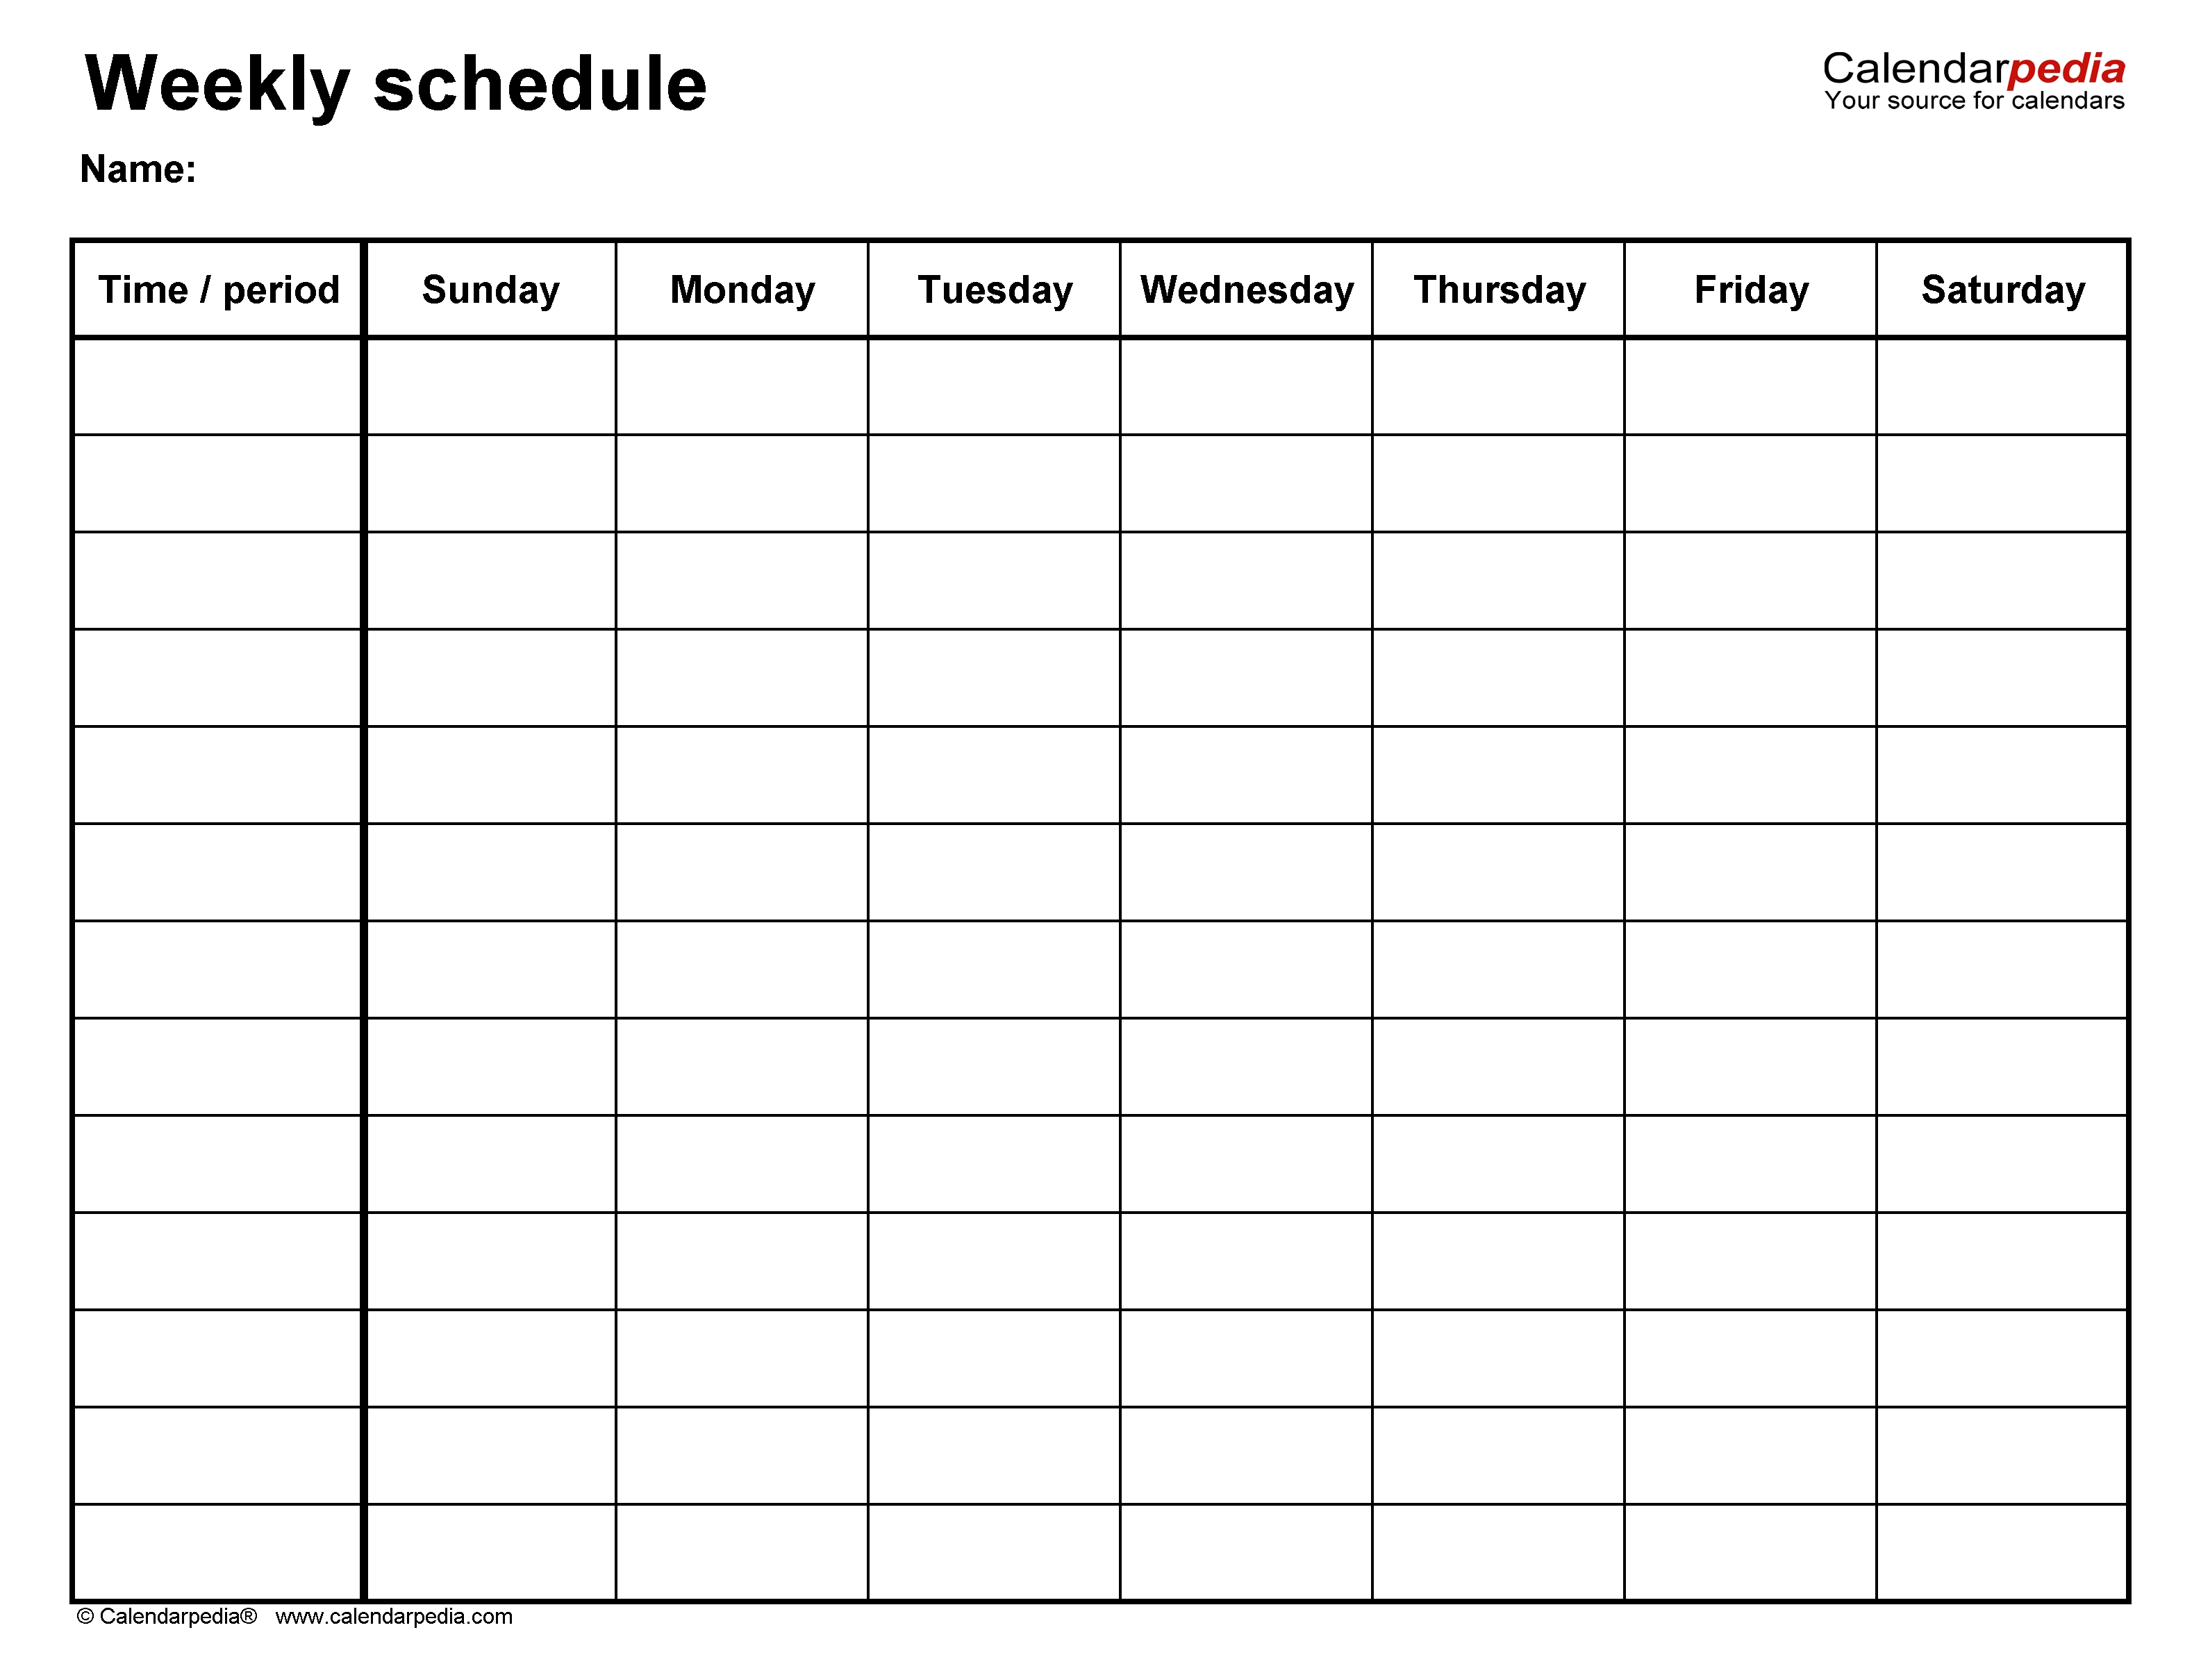 Free Weekly Schedule Templates For Word - 18 Templates  7 Day Weekly Chart Printable